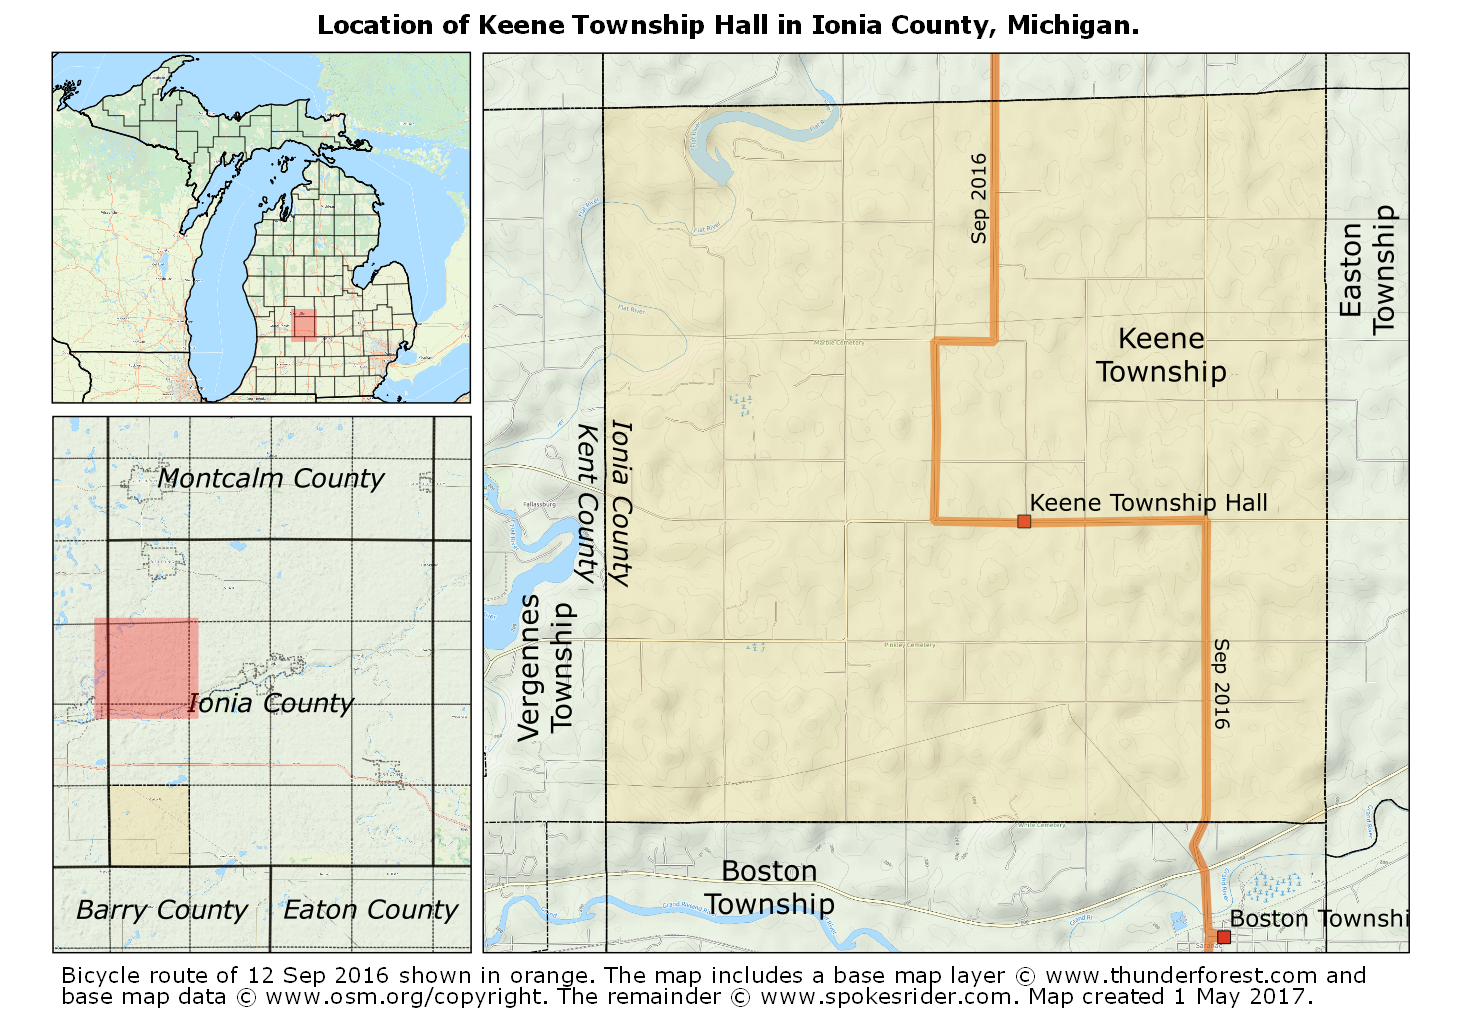 Map Showing The Location Of Keene Township Hall In Ionia County